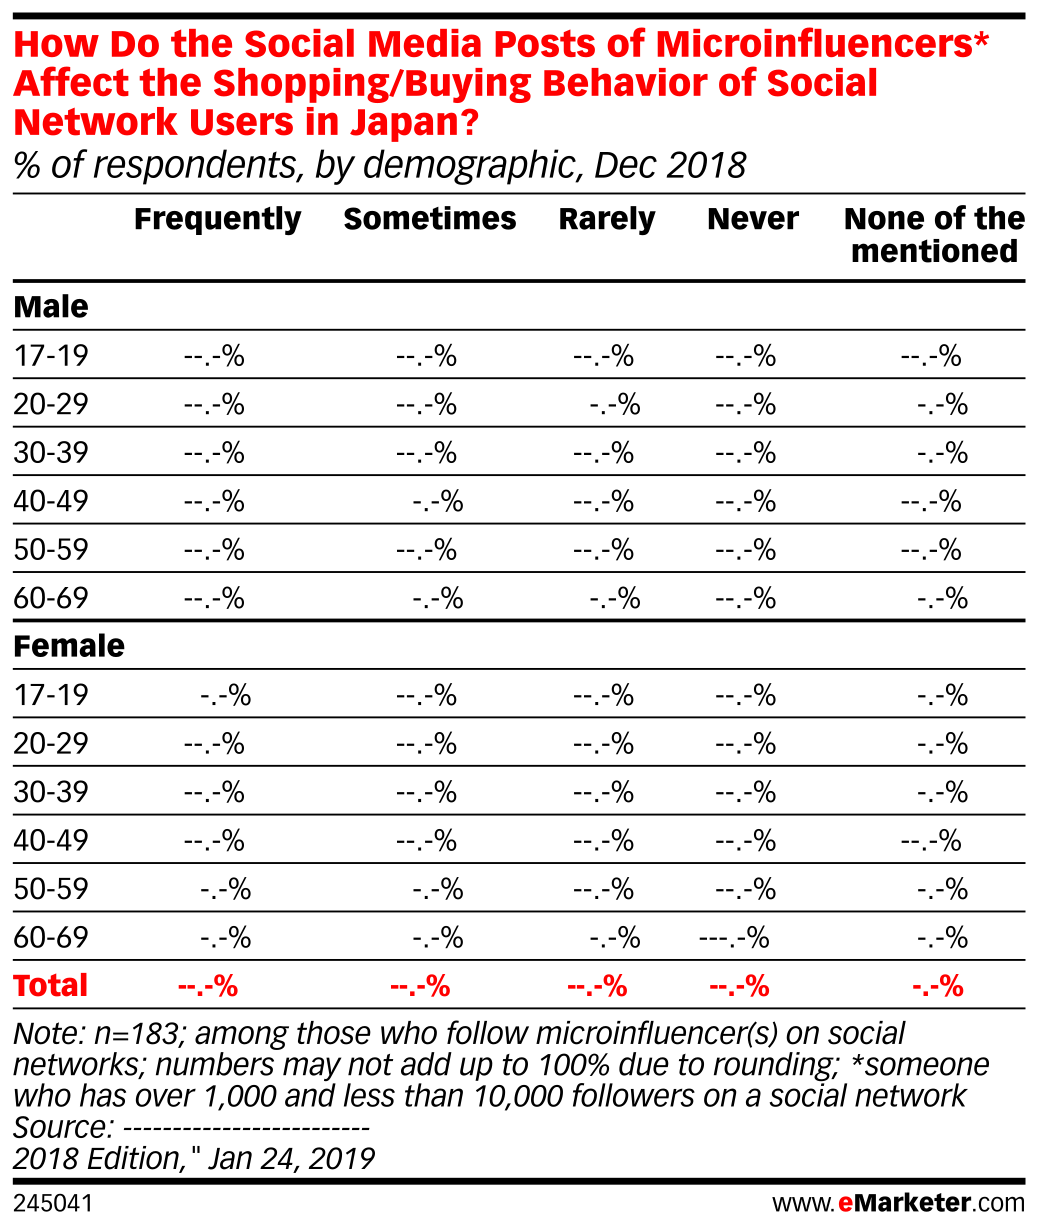 How Do the Social Media Posts of Microinfluencers* Affect the Shopping/Buying Behavior of Social Network Users in Japan? (% of respondents, by demographic, Dec 2018)